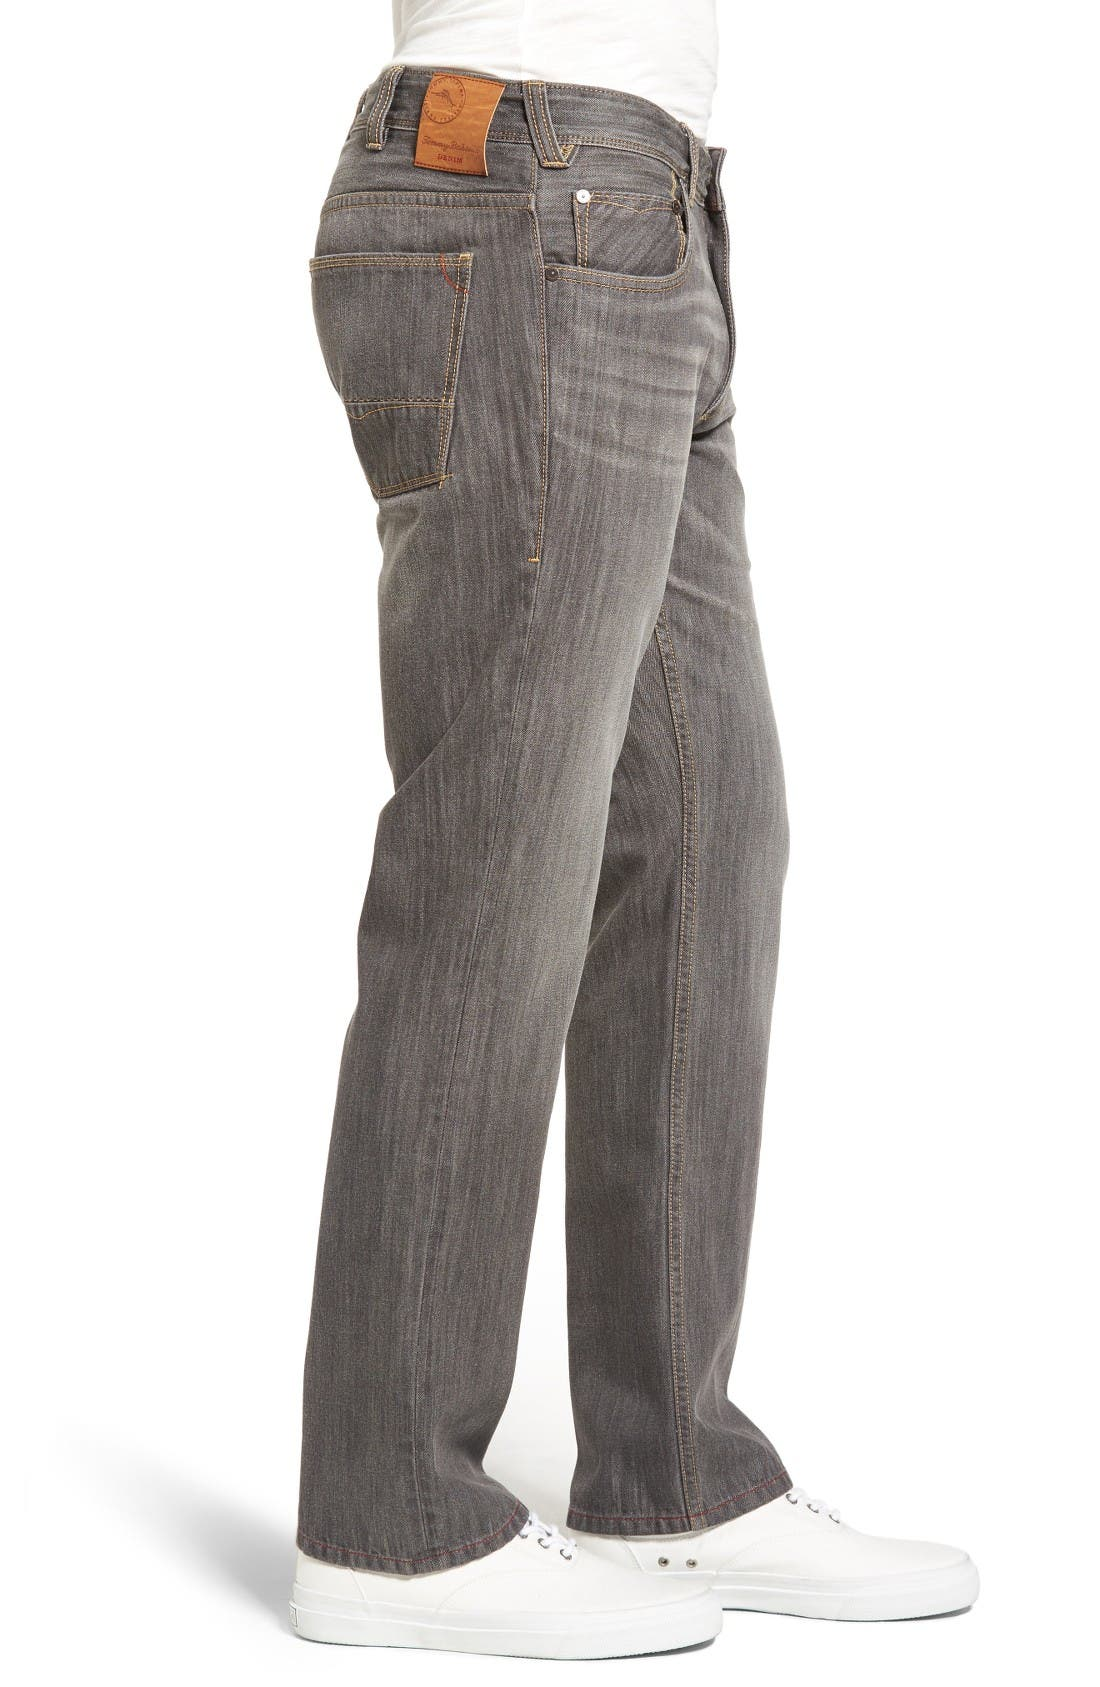 Barbados Straight Leg Jeans,                             Alternate thumbnail 3, color,                             Vintage Grey Wash